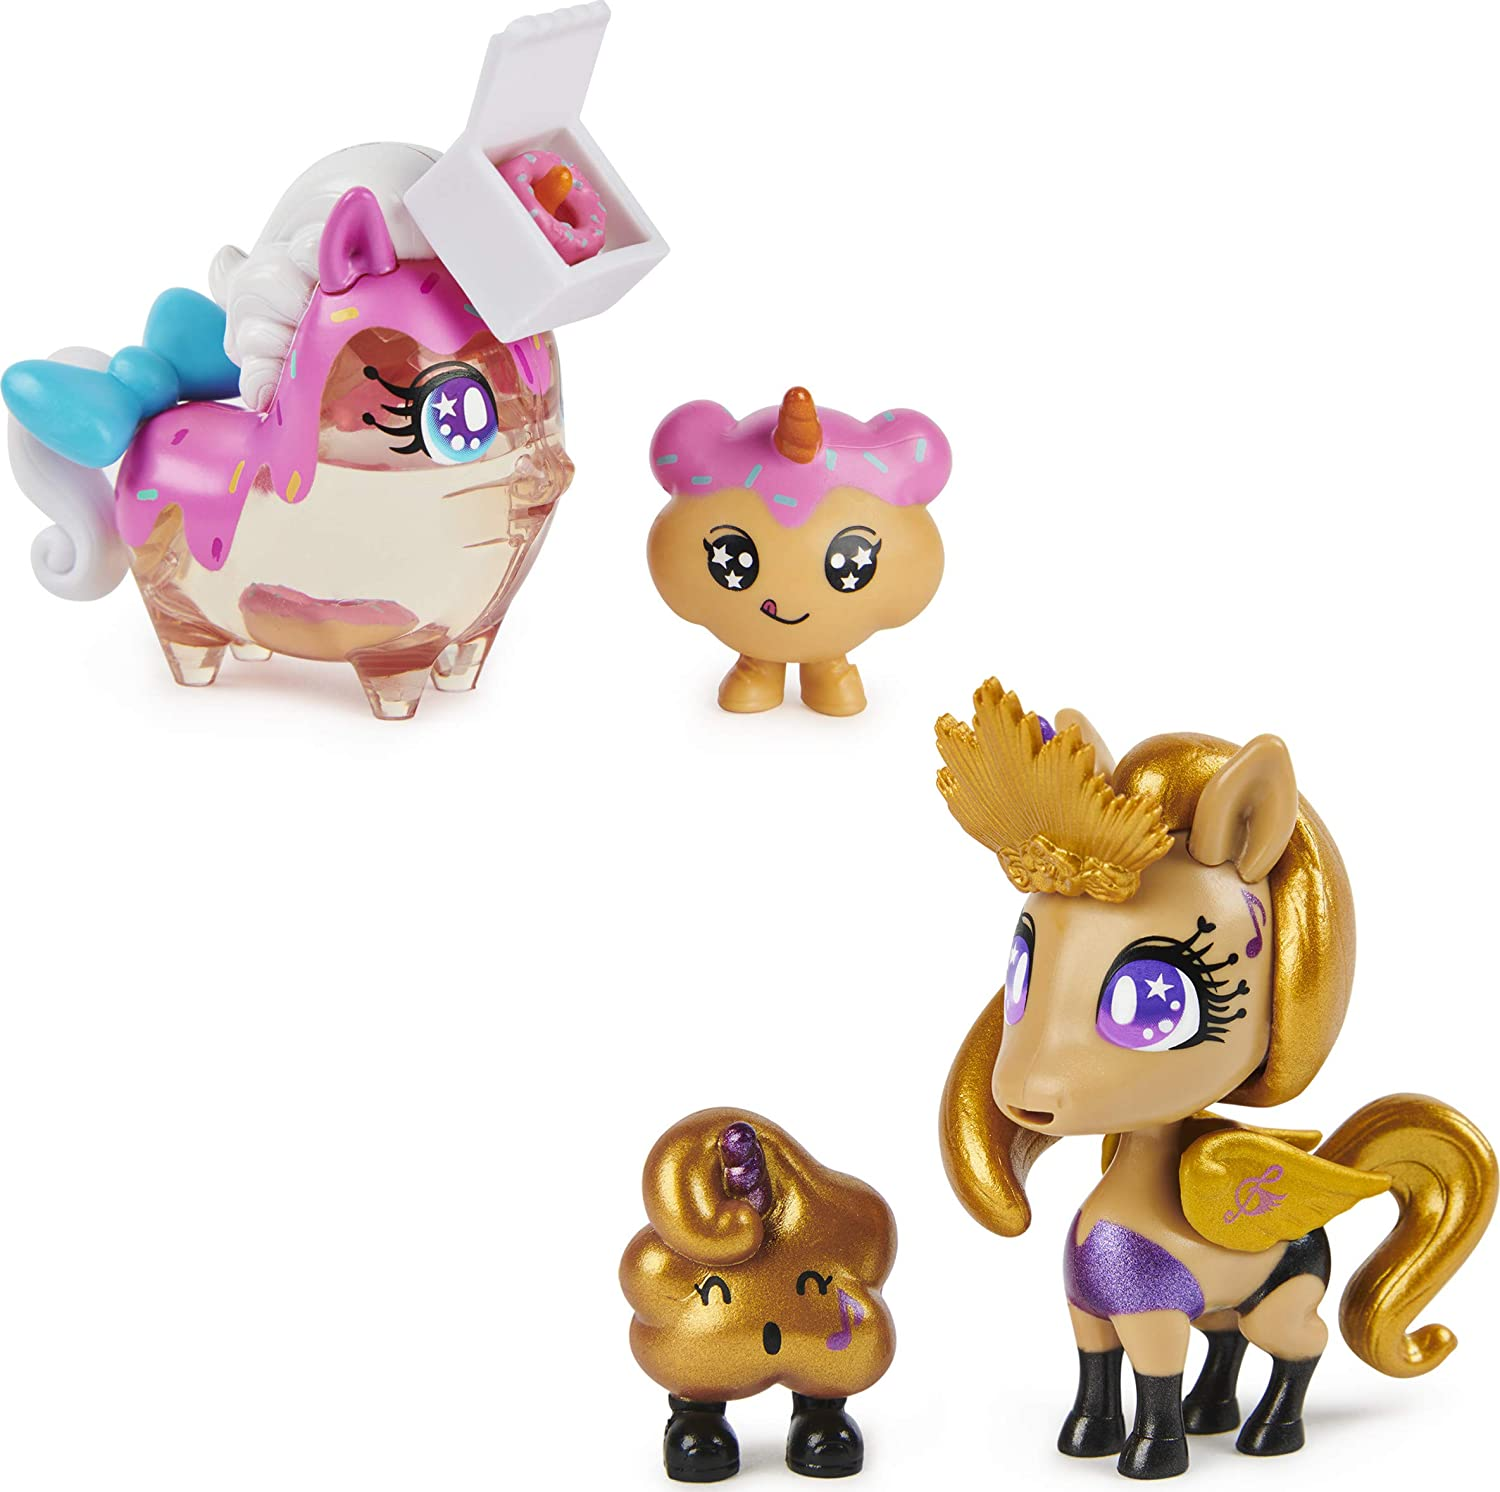 4. Collectible Surprise Unicorns (Two-Pack)